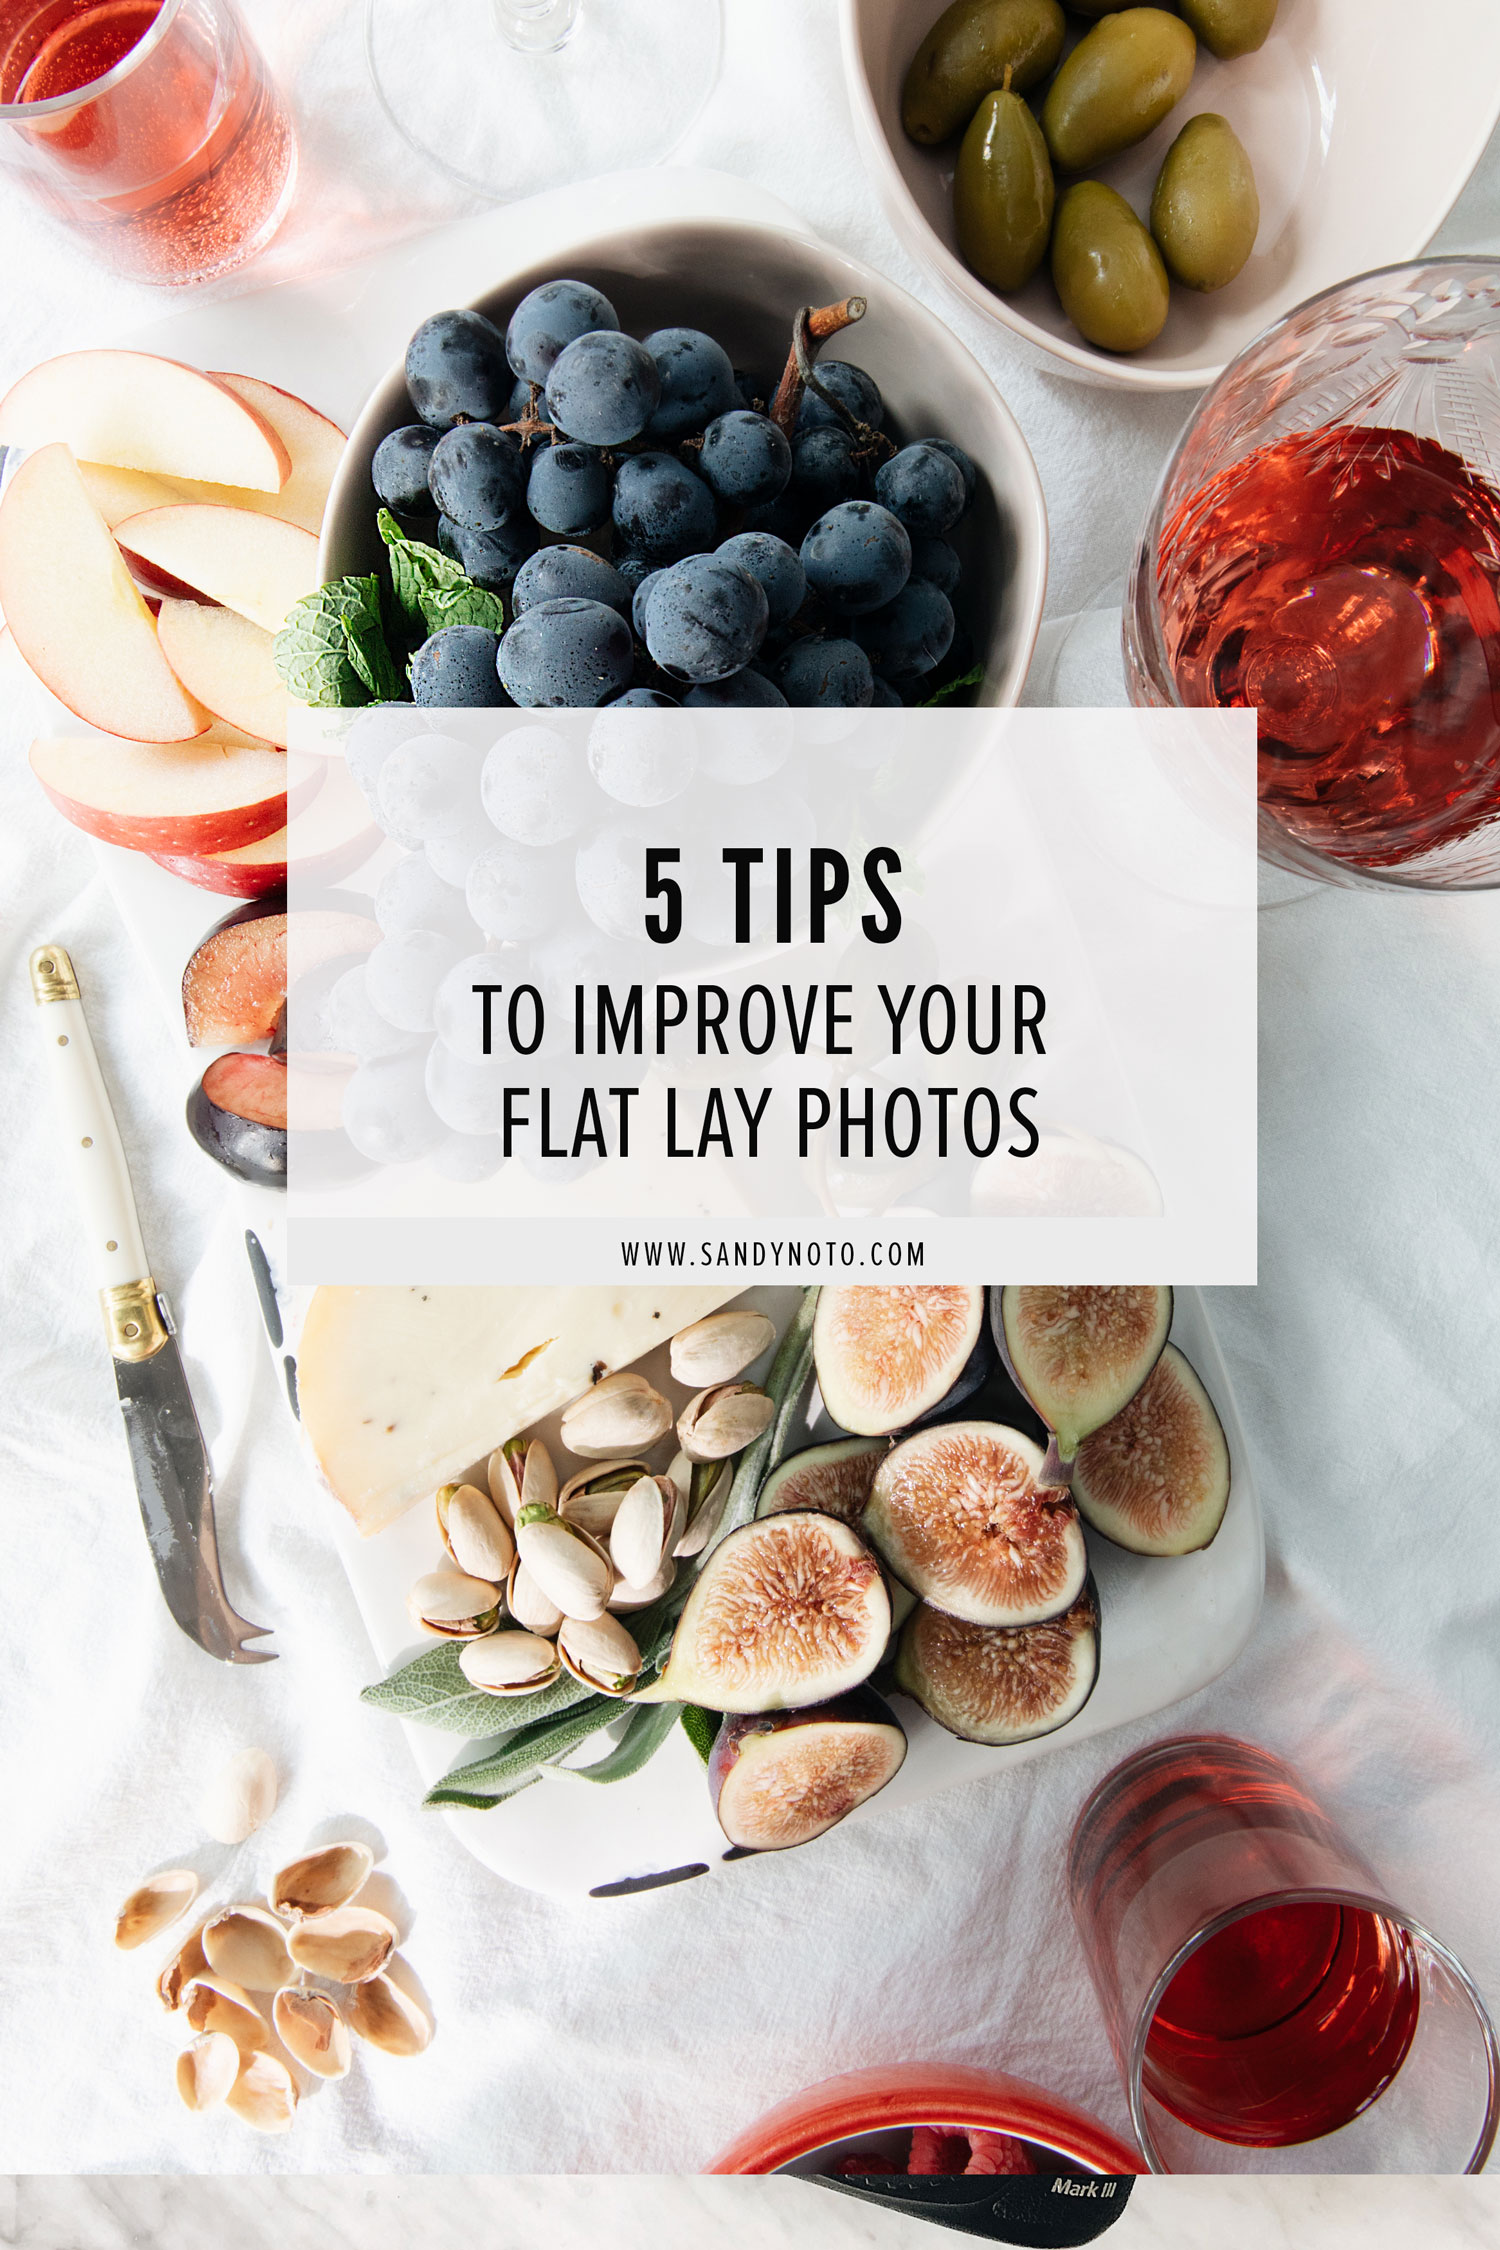 5 Tips for Flat Lay Photos